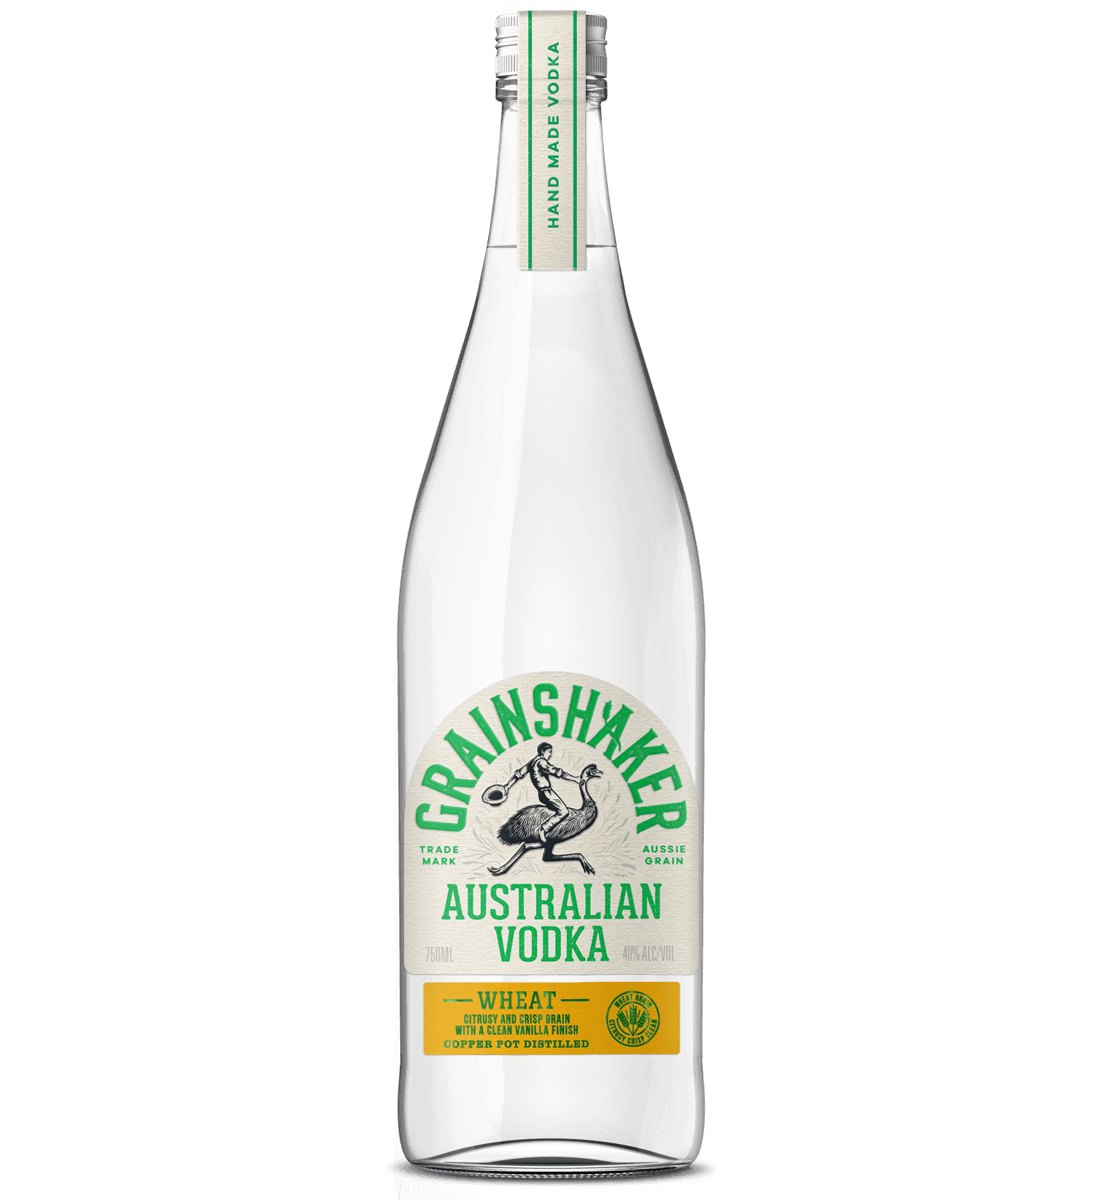 Grainshaker Wheat Vodka